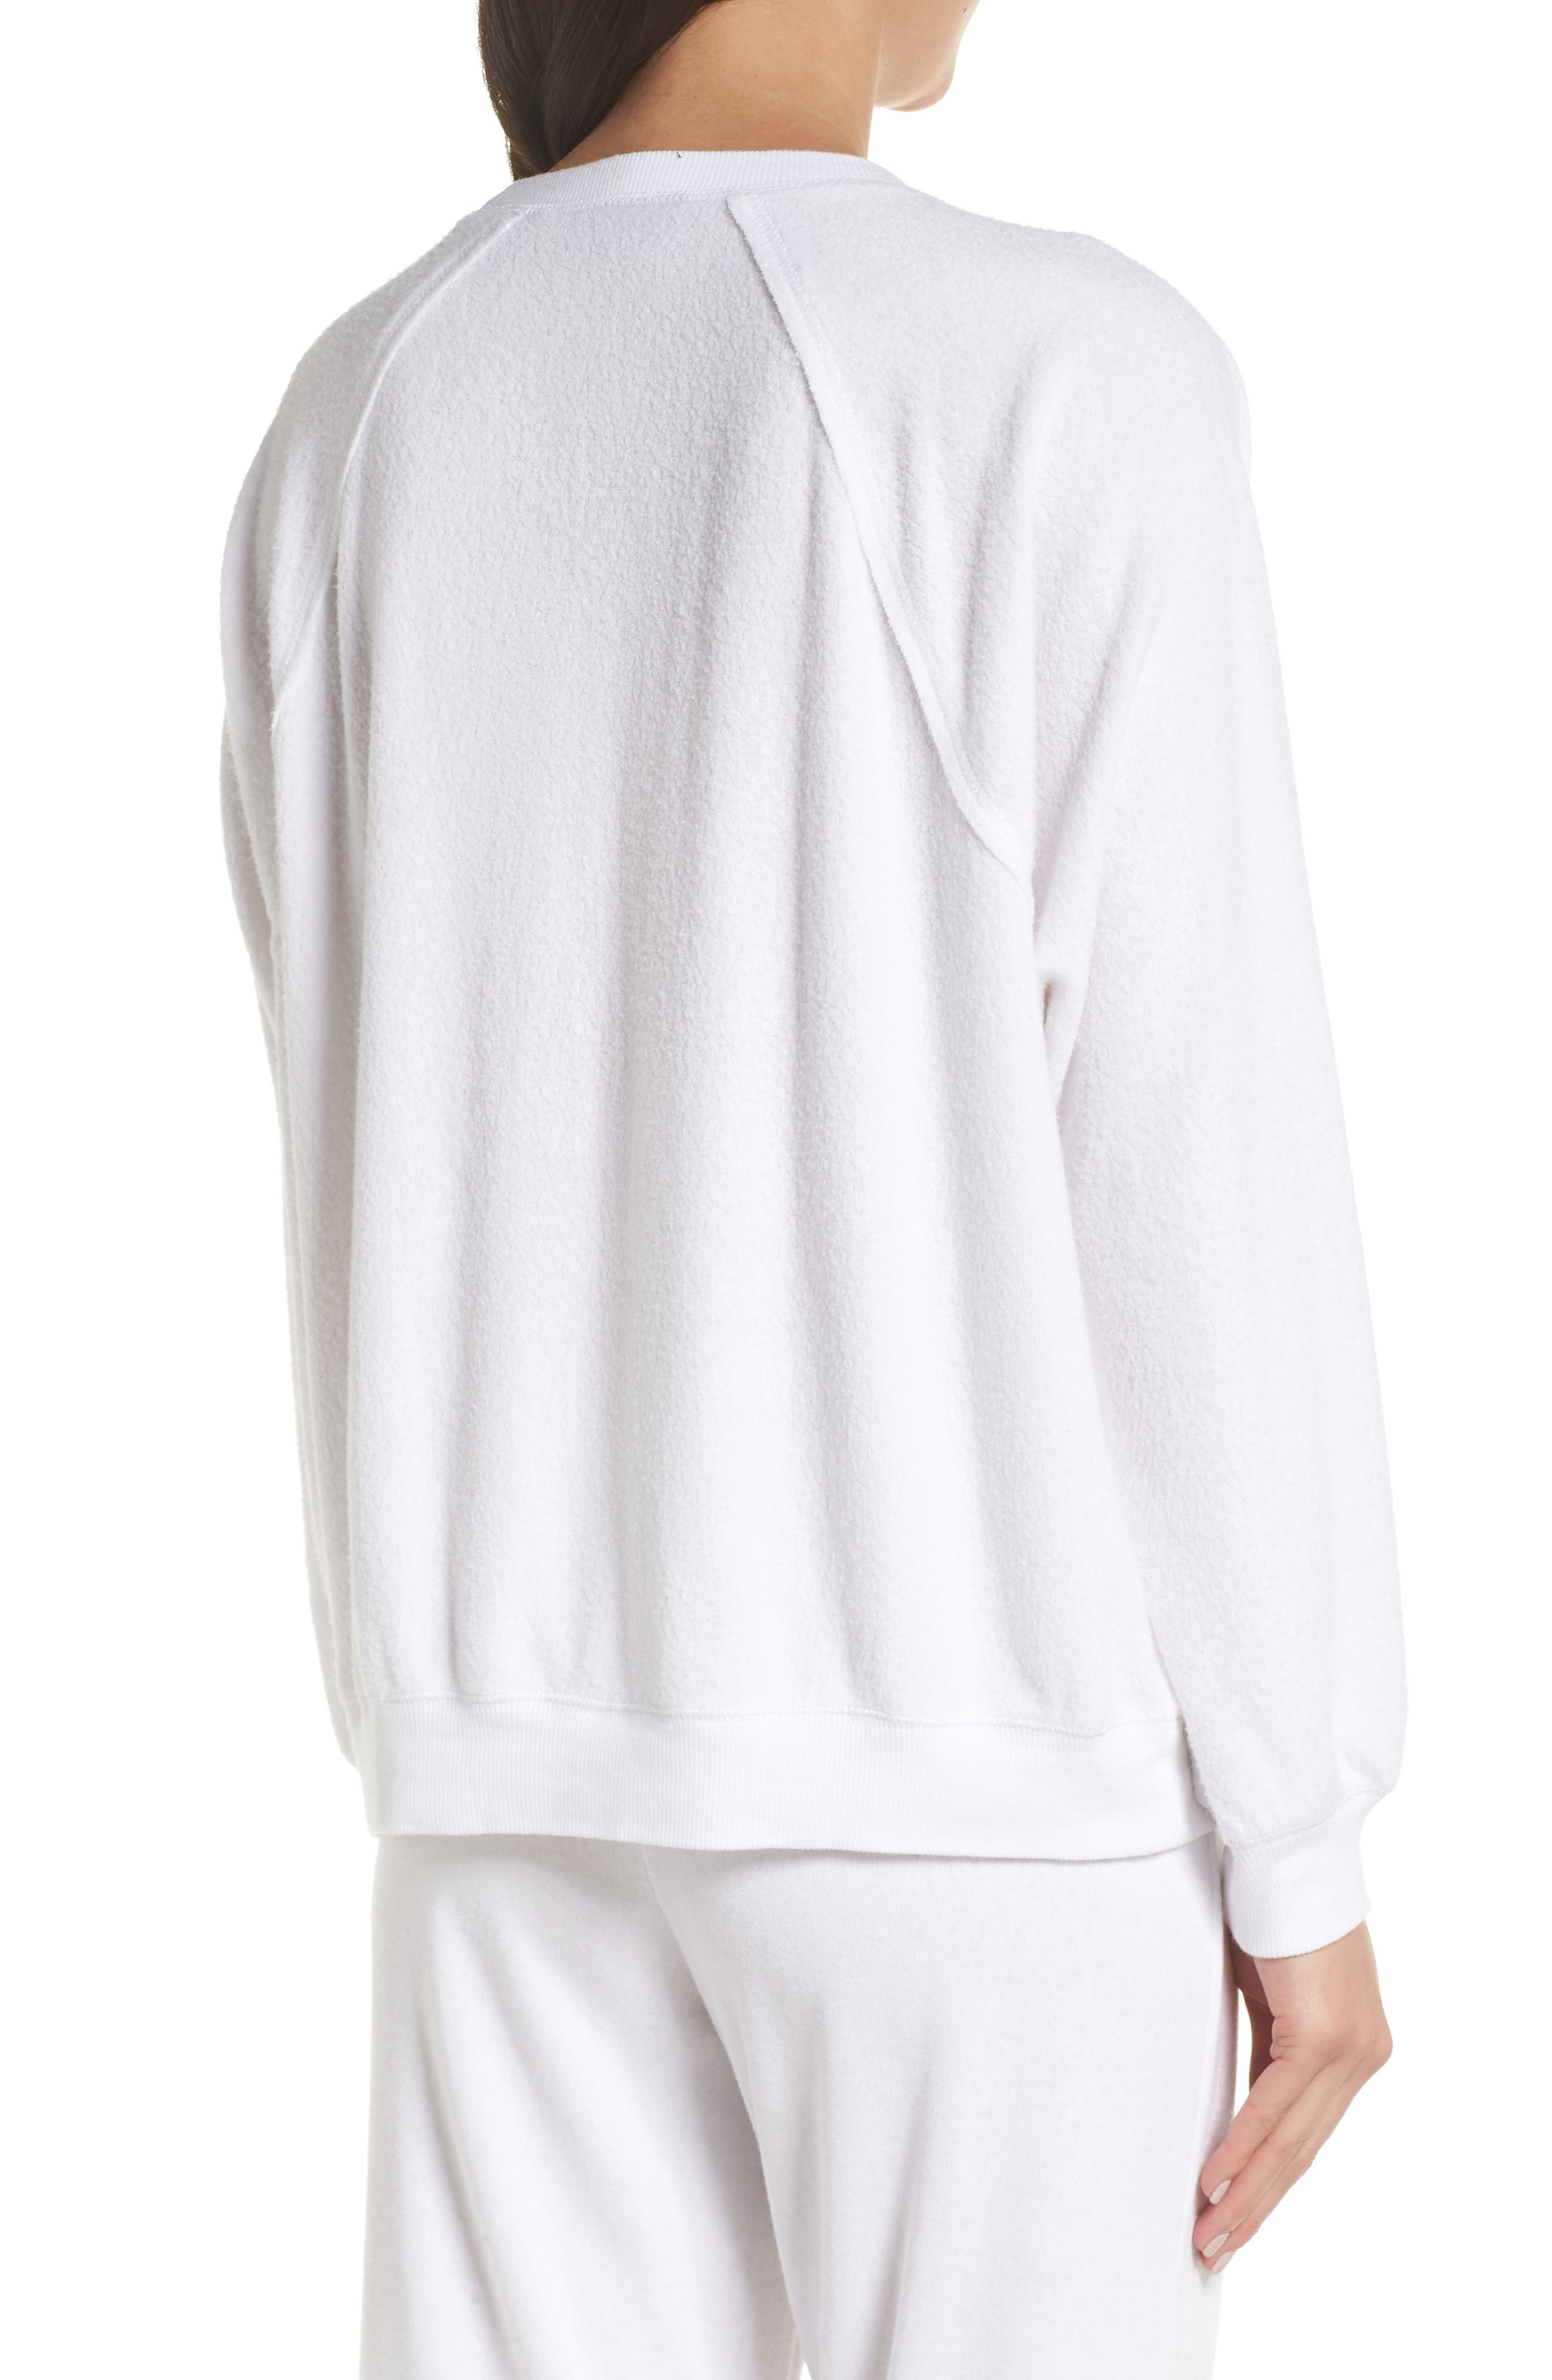 SOMETHING NAVY, Batwing Fleece Pullover, Alternate thumbnail 2, color, WHITE